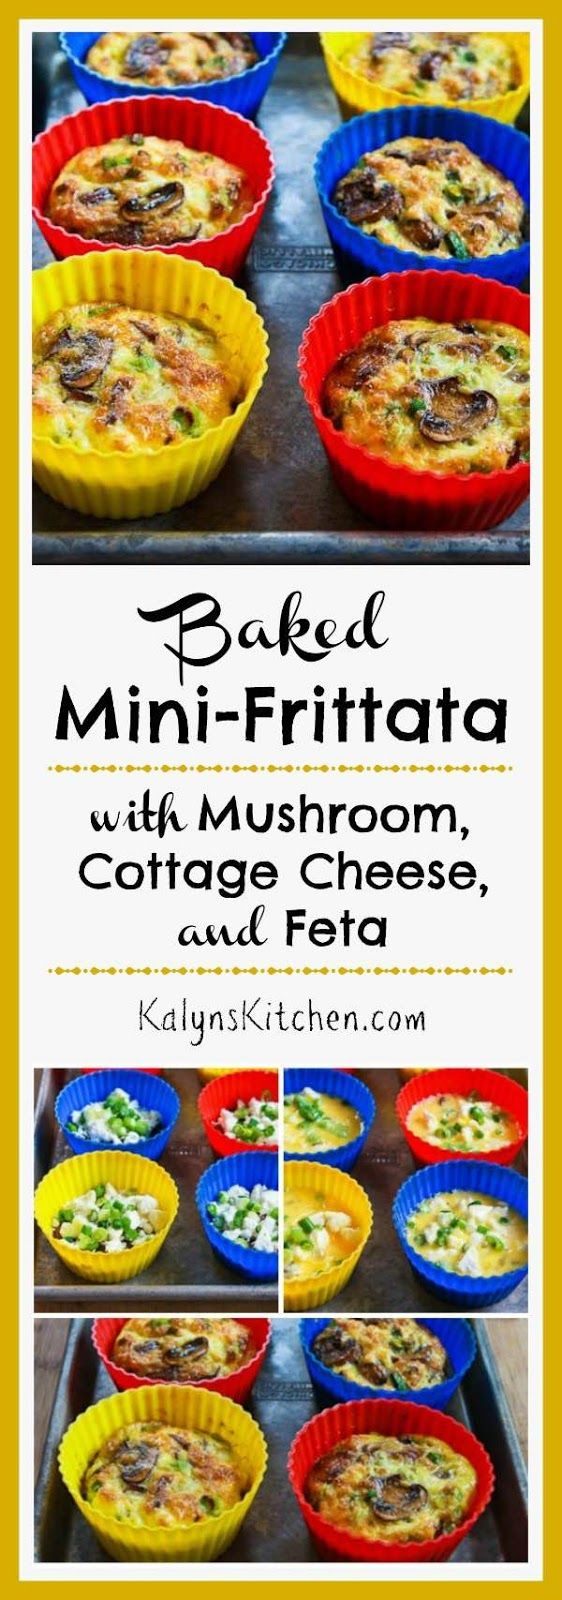 Baked Mini-Frittata with Mushrooms, Cottage Cheese, and Feta is a ...